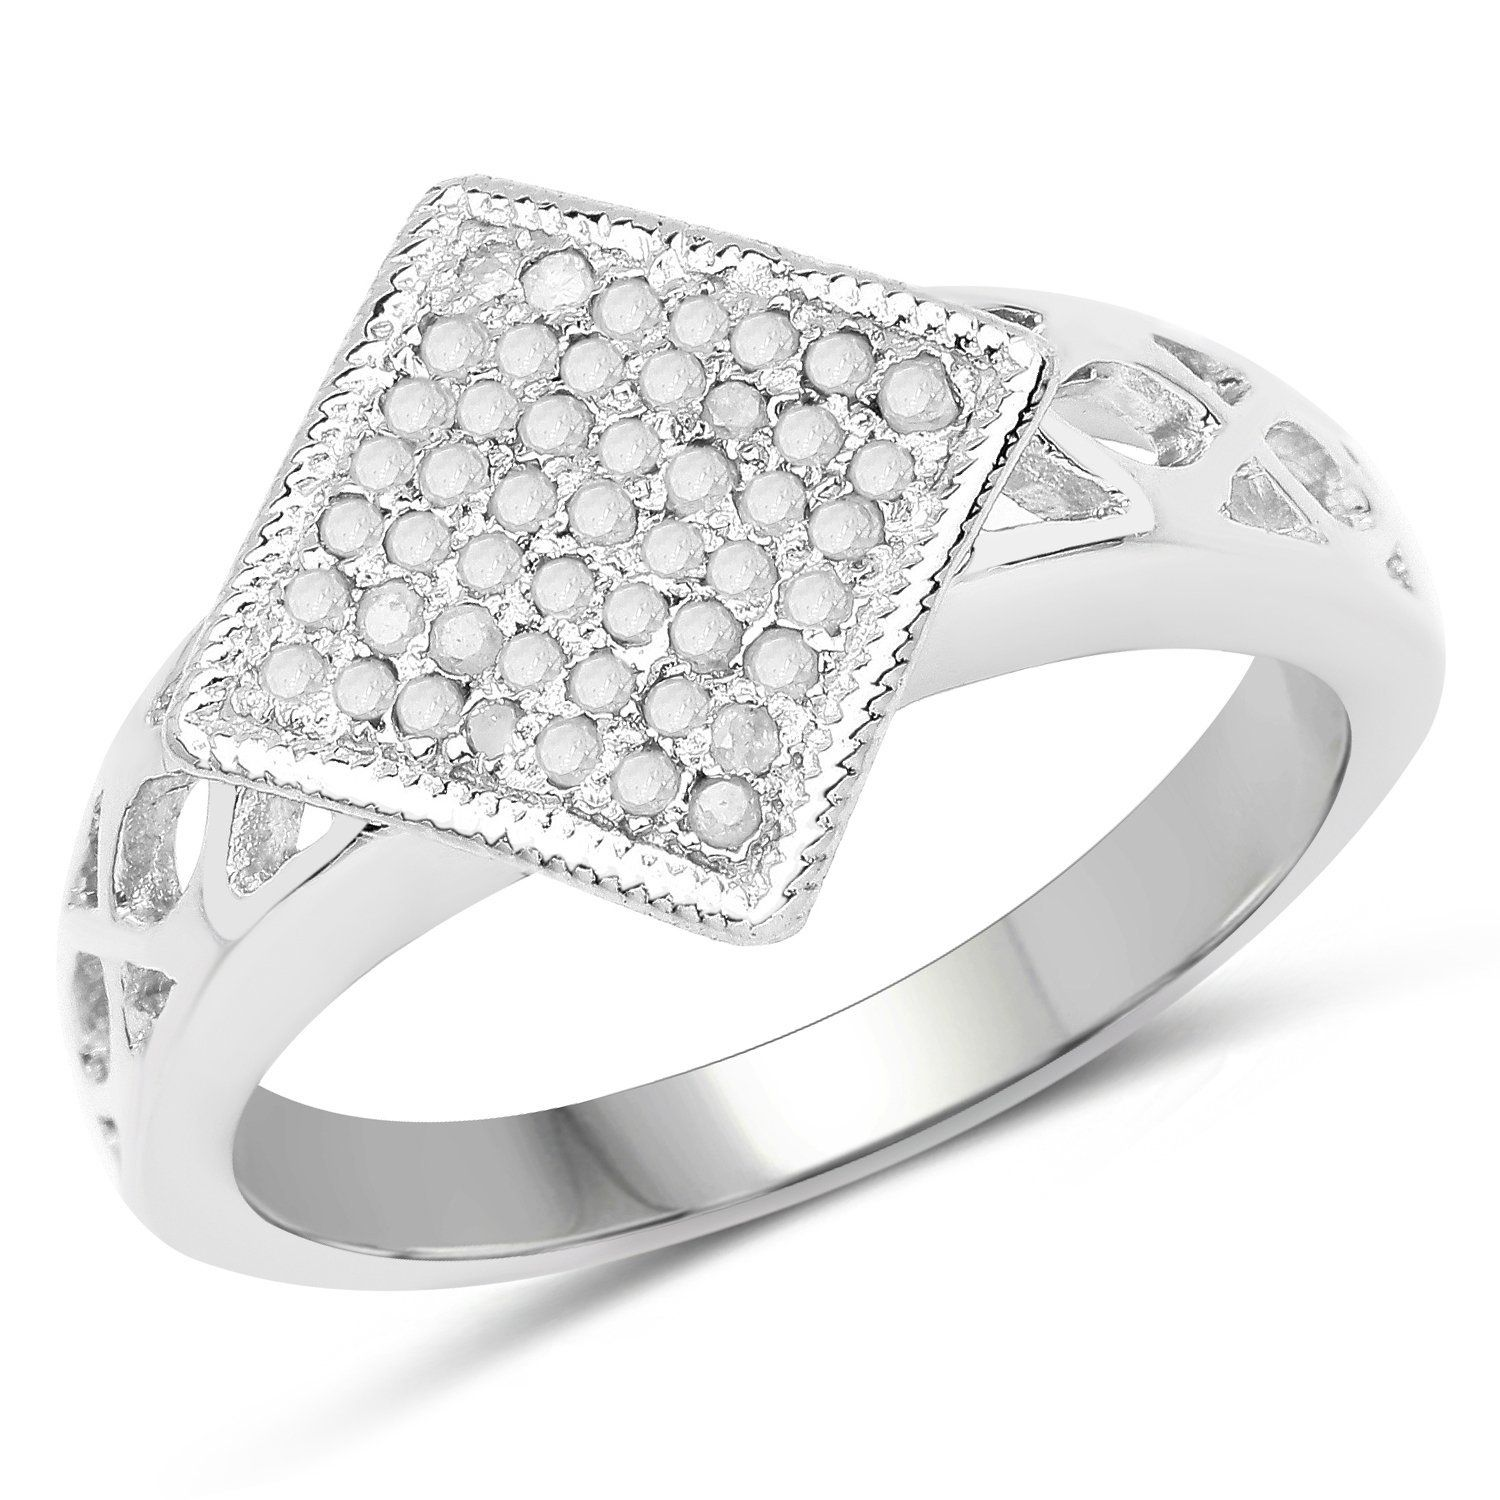 Genuine Round Diamond Ring in Sterling Silver Size 8 00